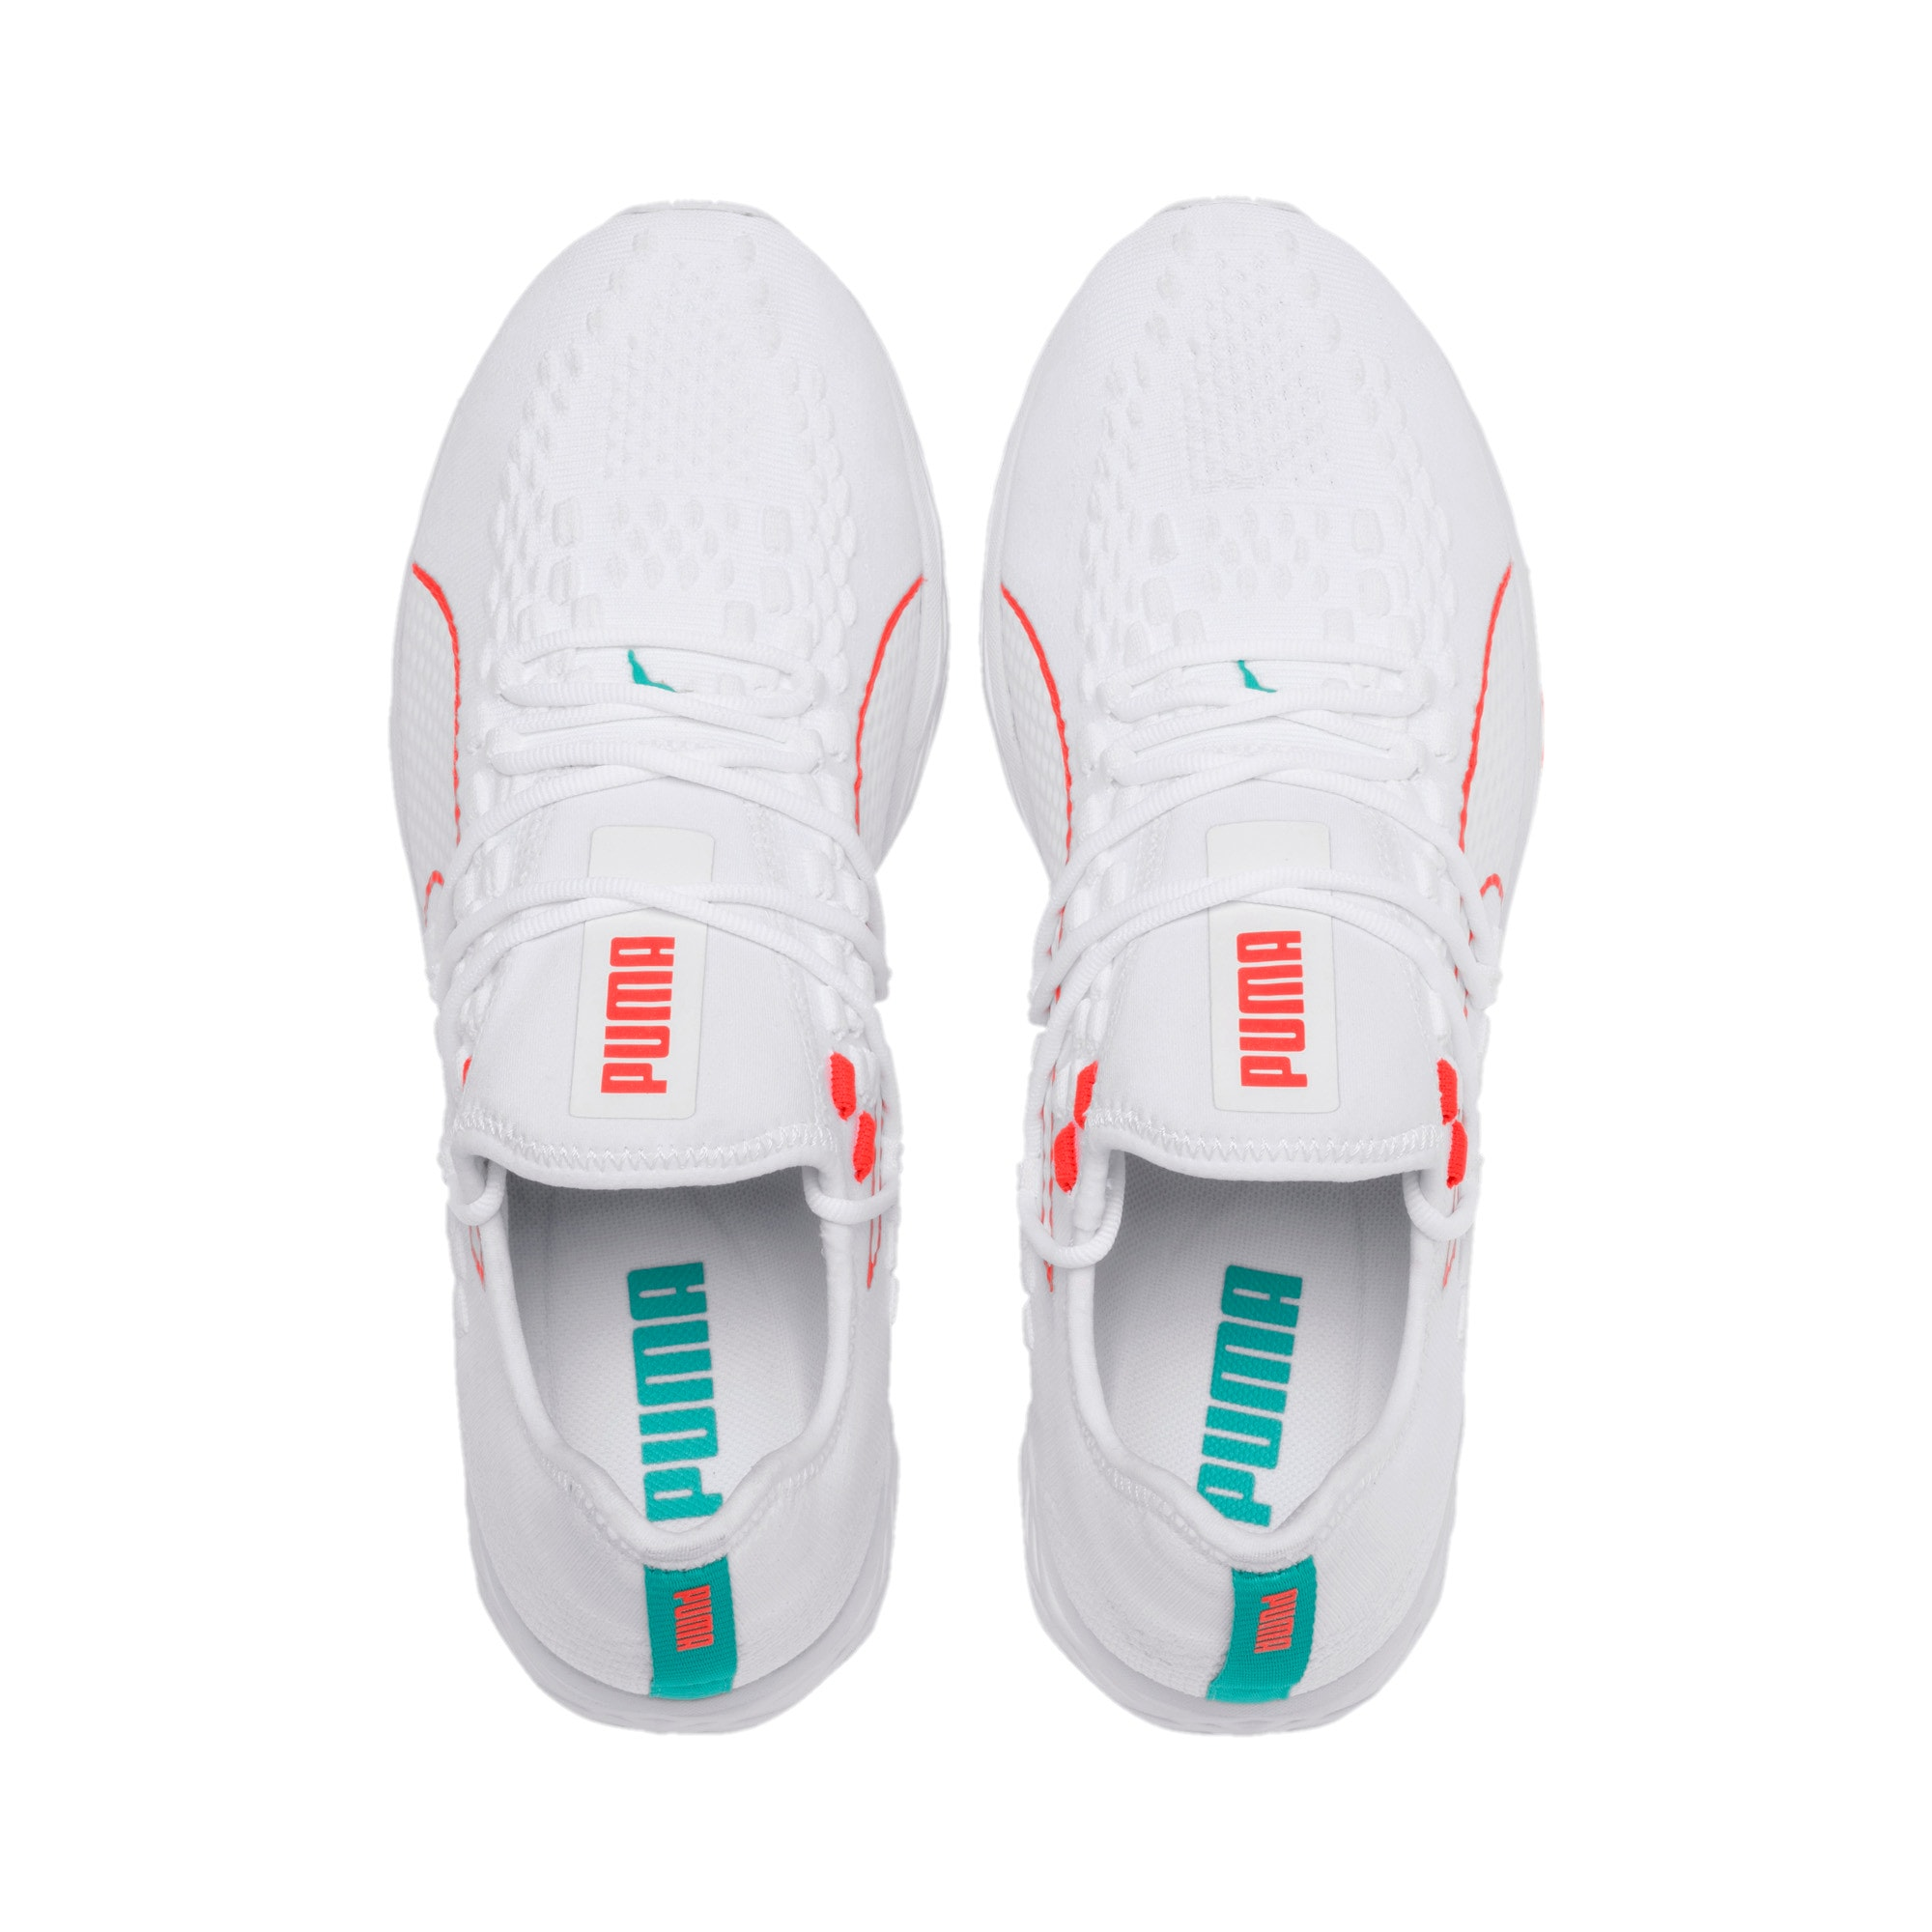 Thumbnail 7 of SPEED RACER Running Shoes, White-Nrgy Red-Turquoise, medium